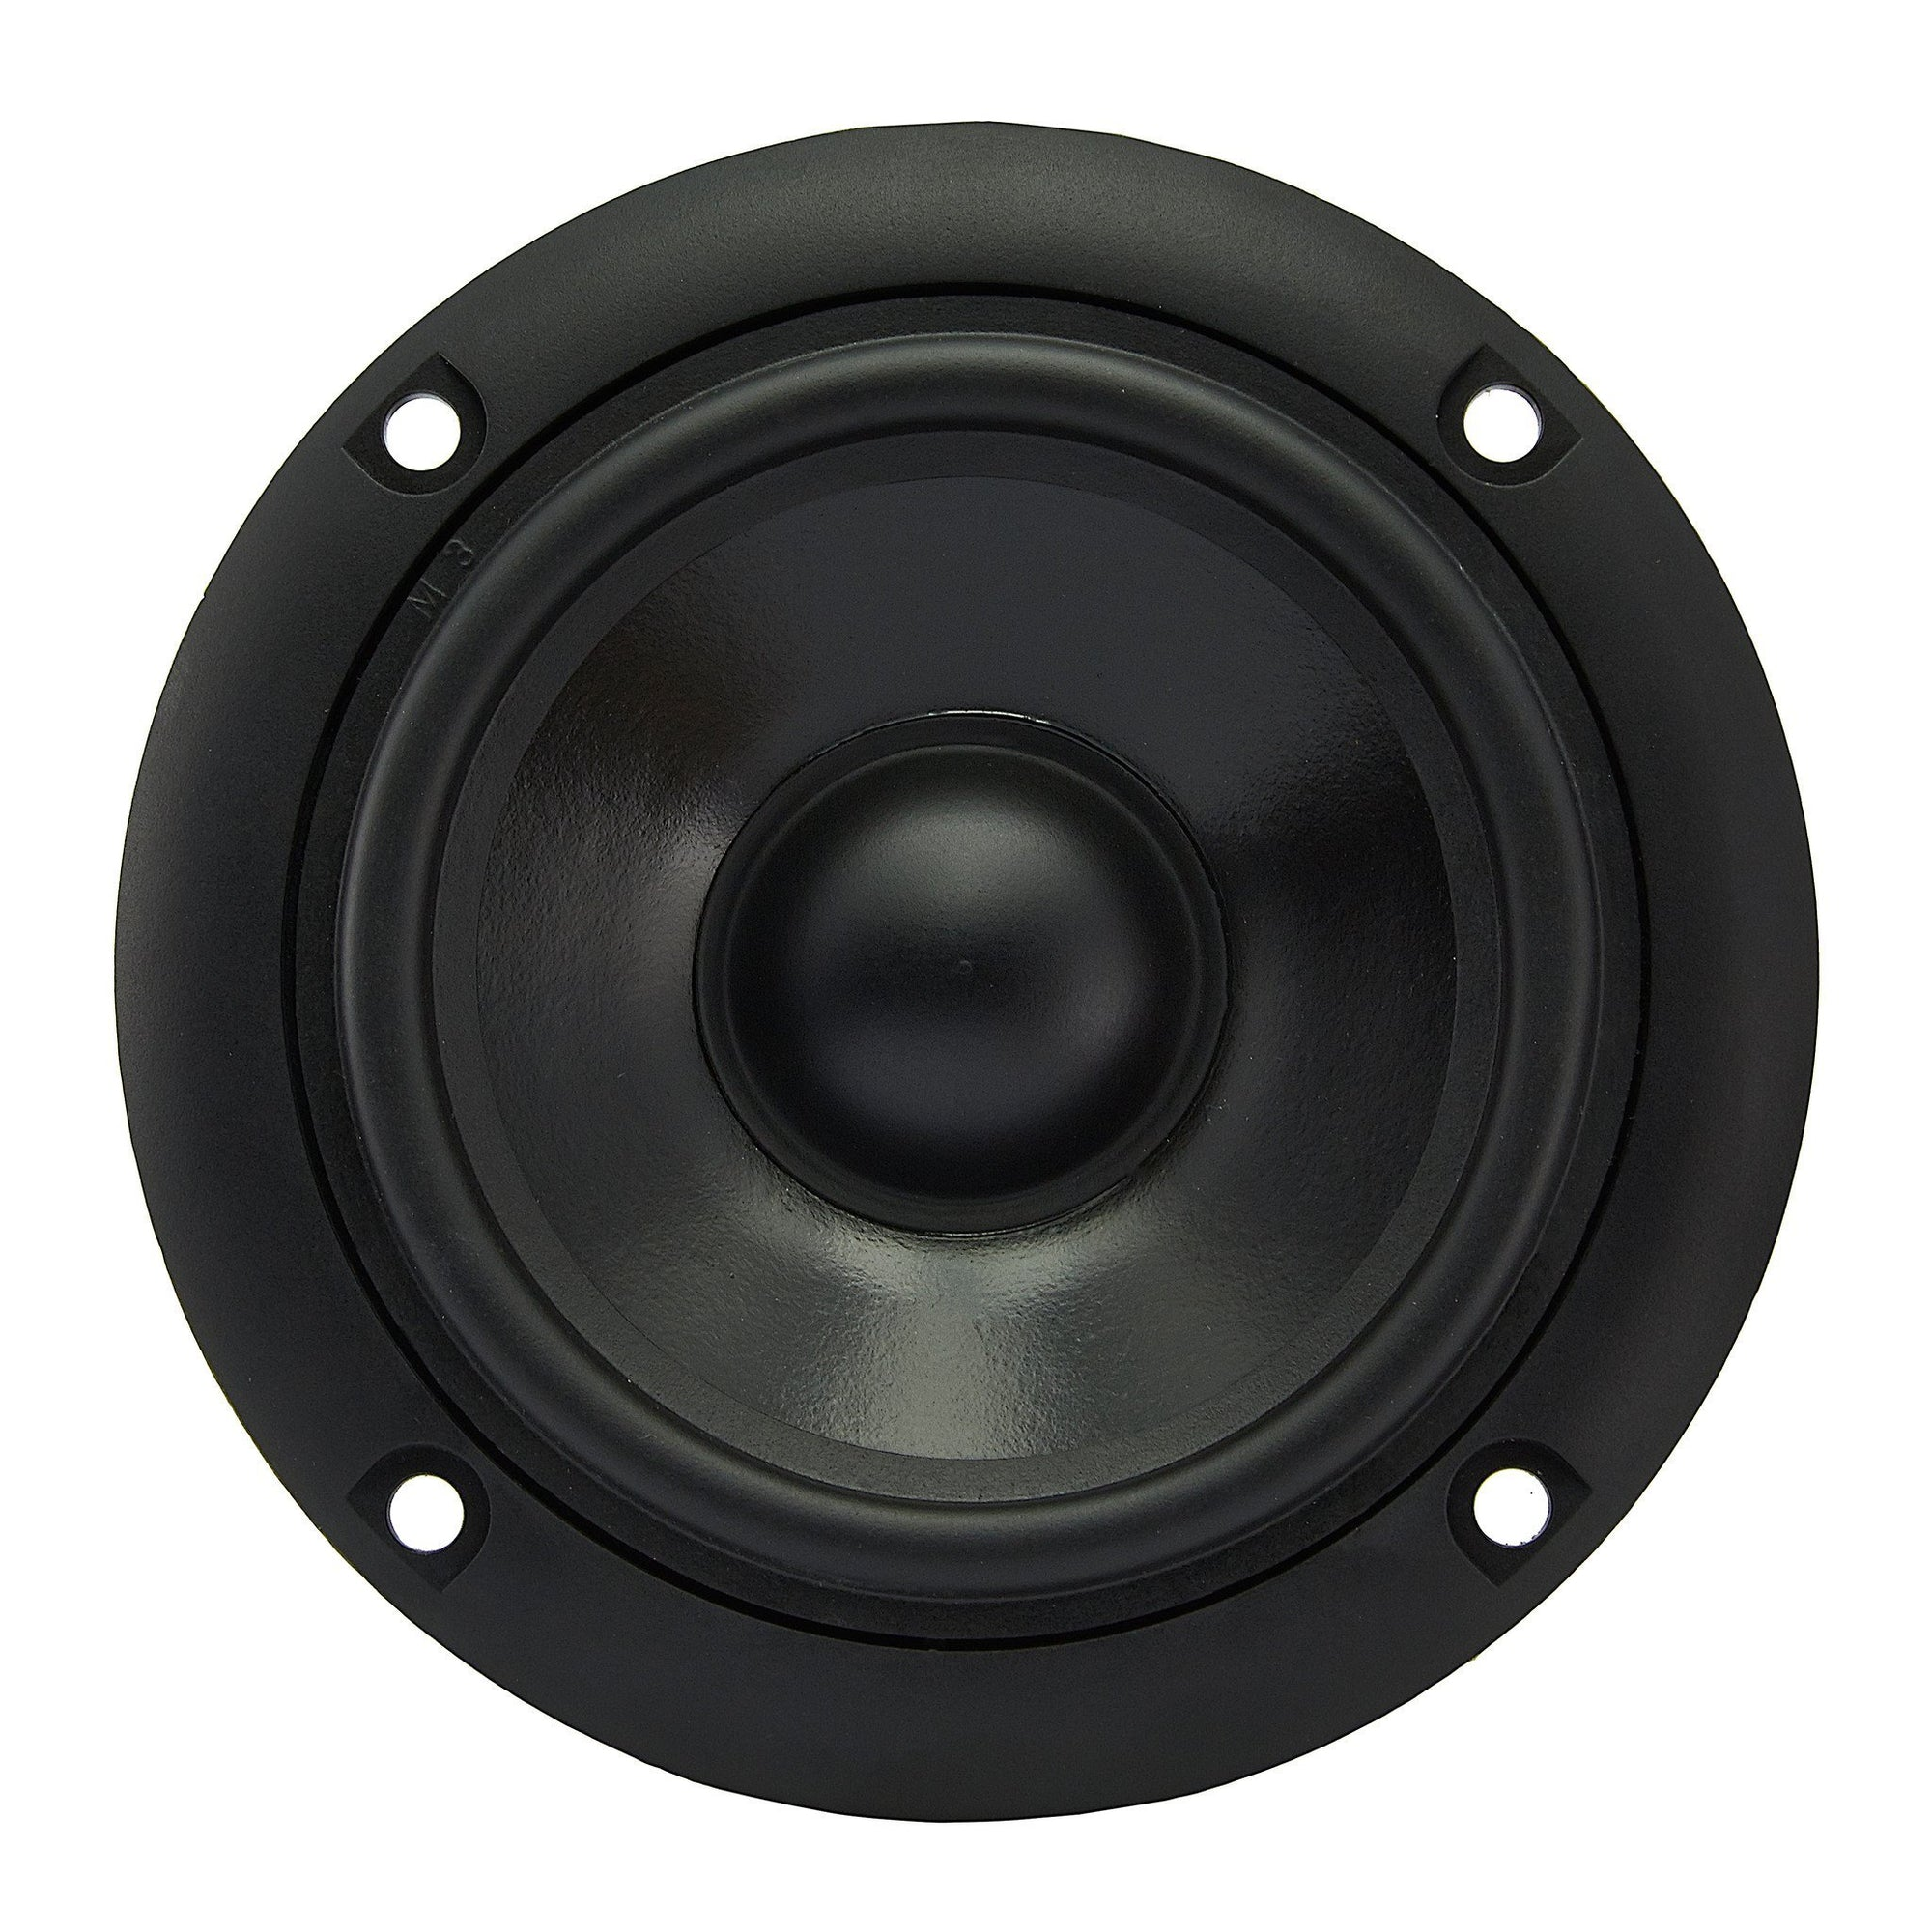 4-5 inch Bass / Midrange Speakers